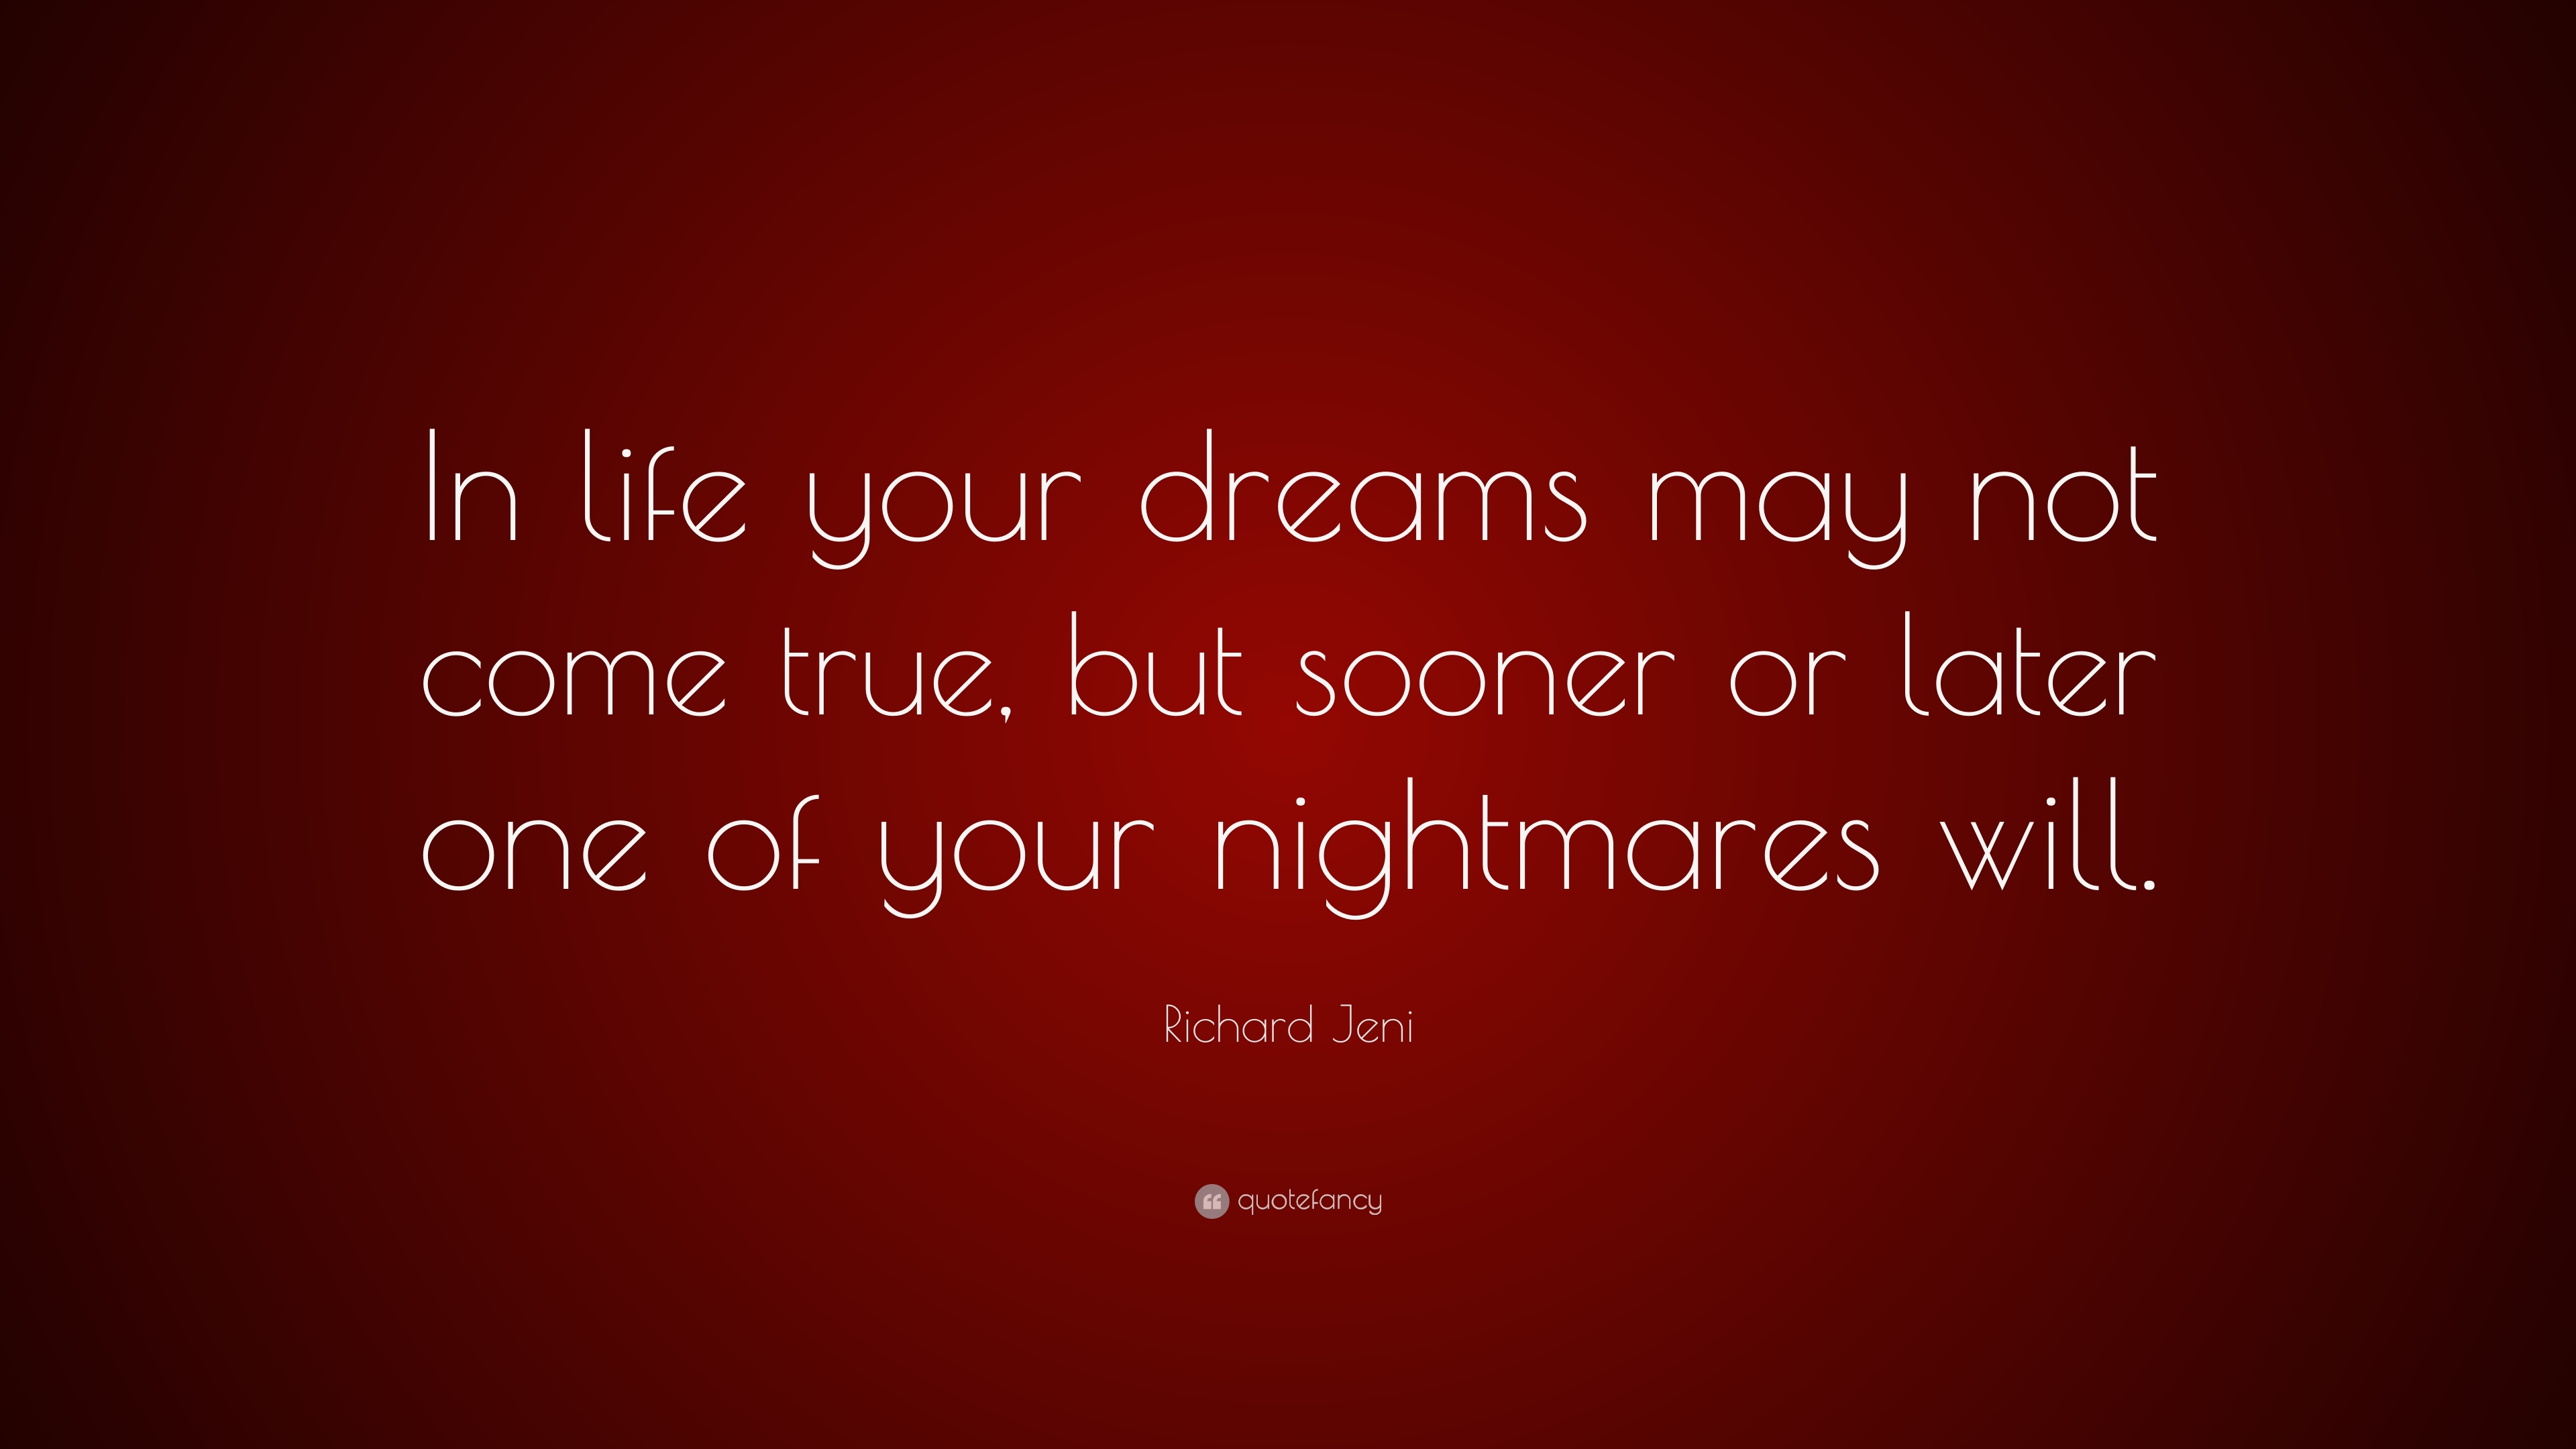 Richard jeni quote in life your dreams may not come true but richard jeni quote in life your dreams may not come true but sooner altavistaventures Image collections